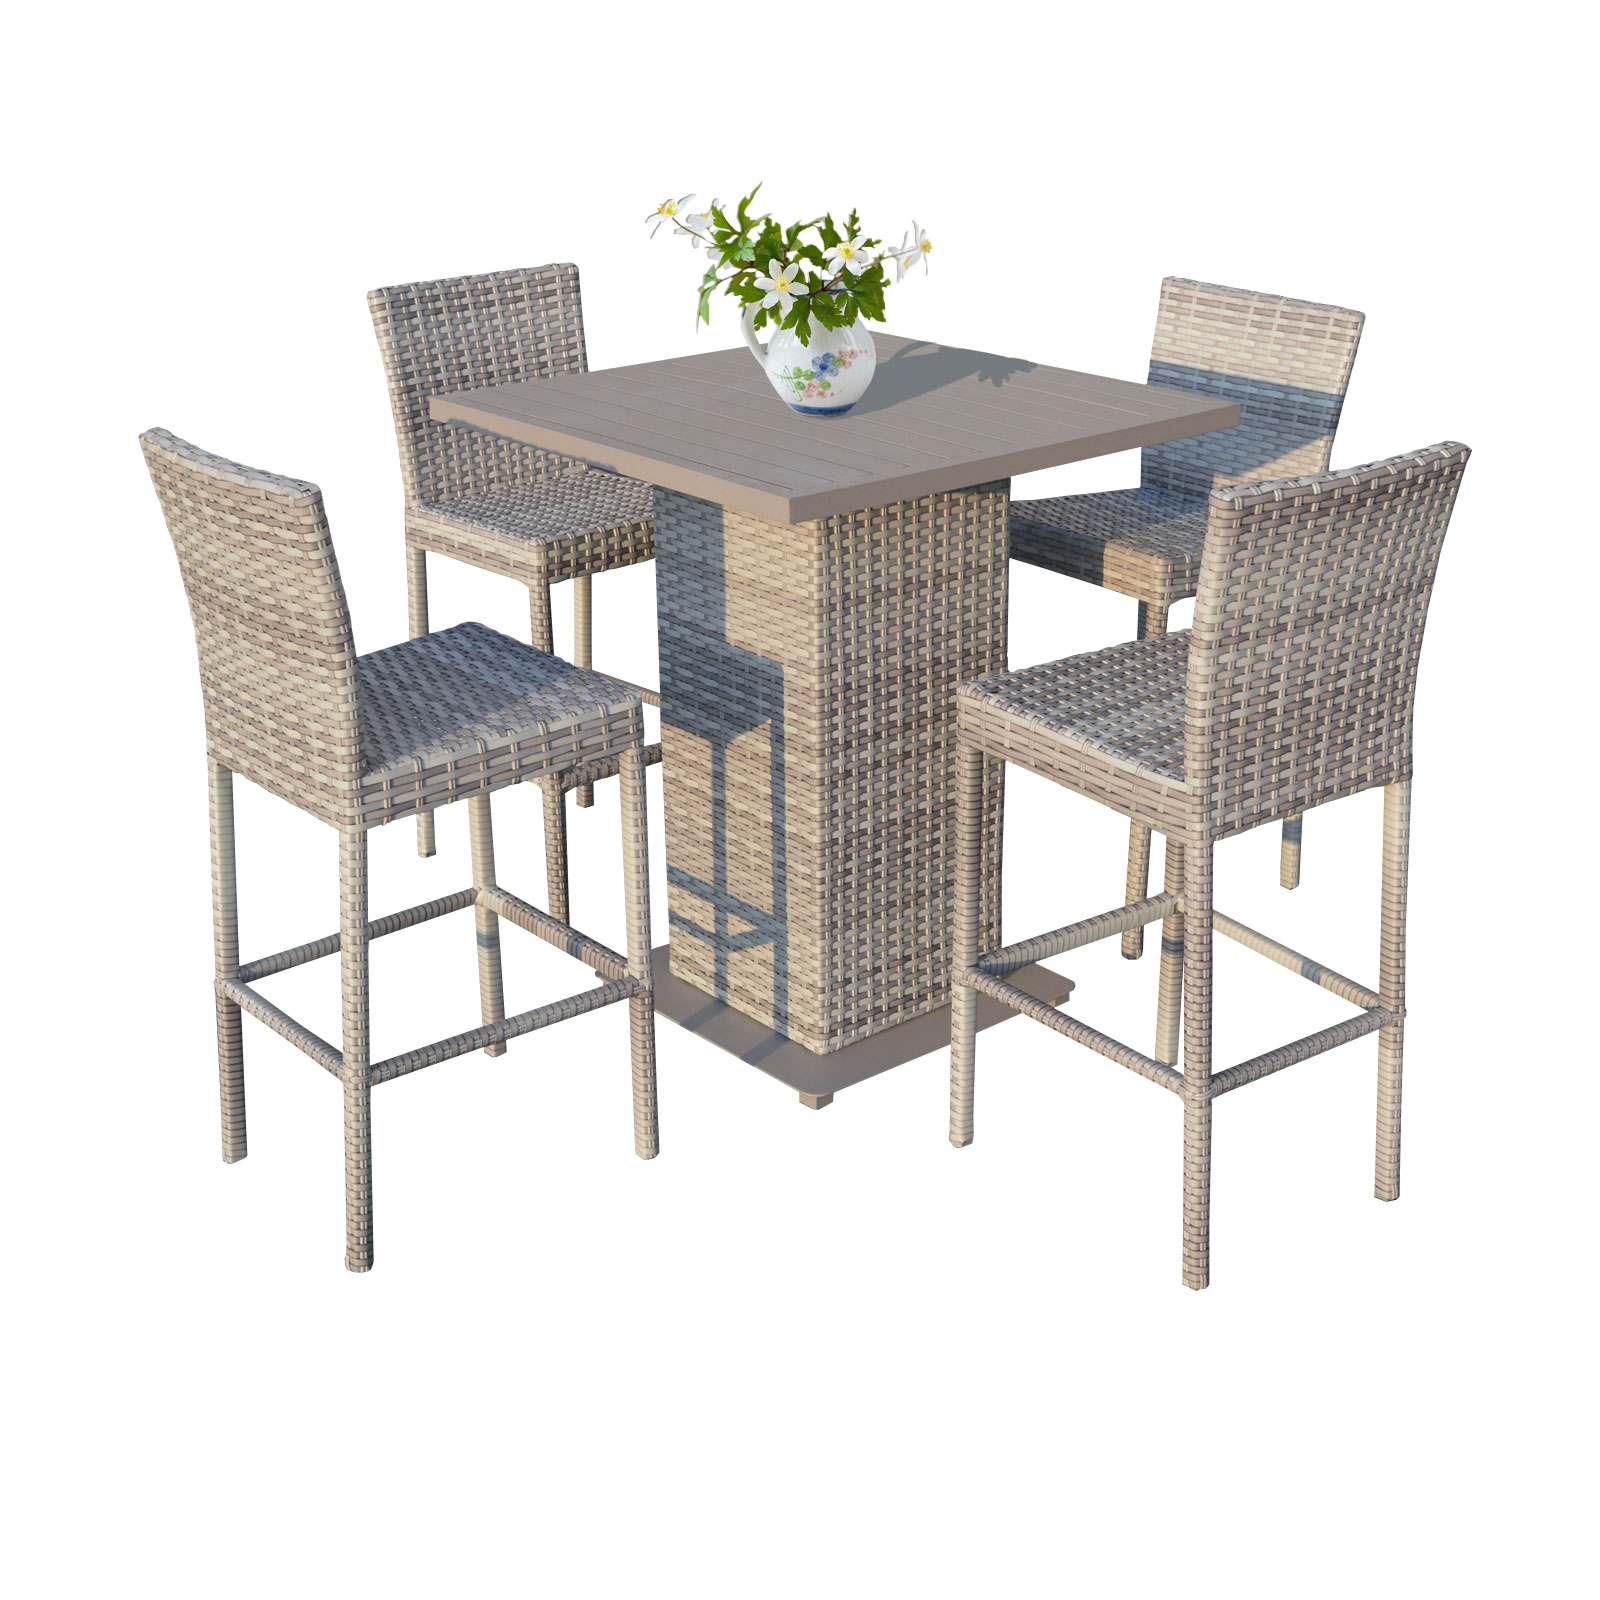 New Haven Pub Table Set With Barstools 5 Piece Outdoor Wicker Patio Furniture